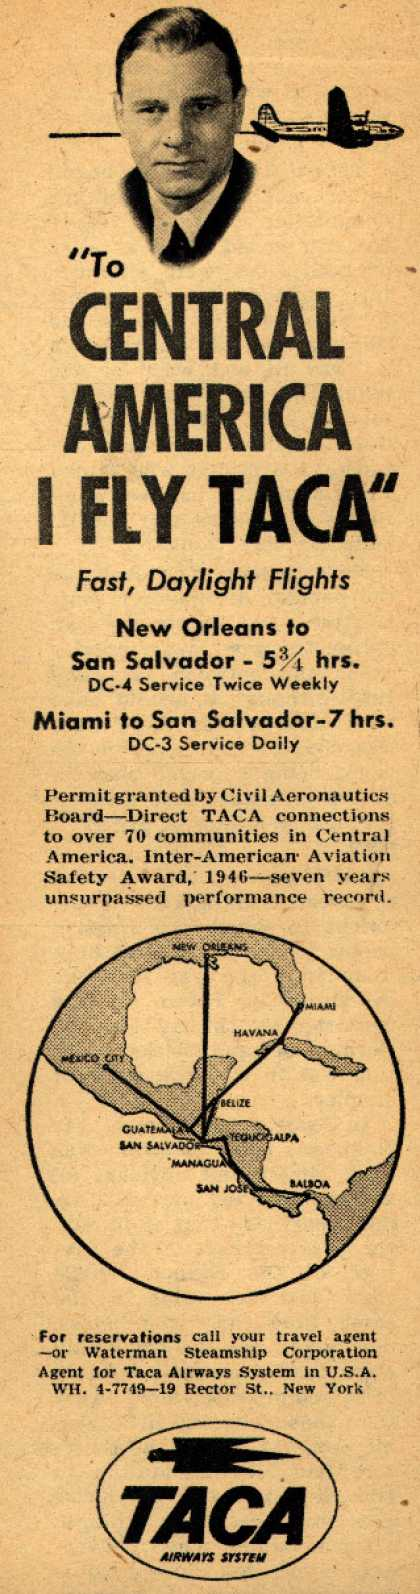 "TACA Airways System's Taca Airways System – ""To Central America I Fly Taca"" (1947)"